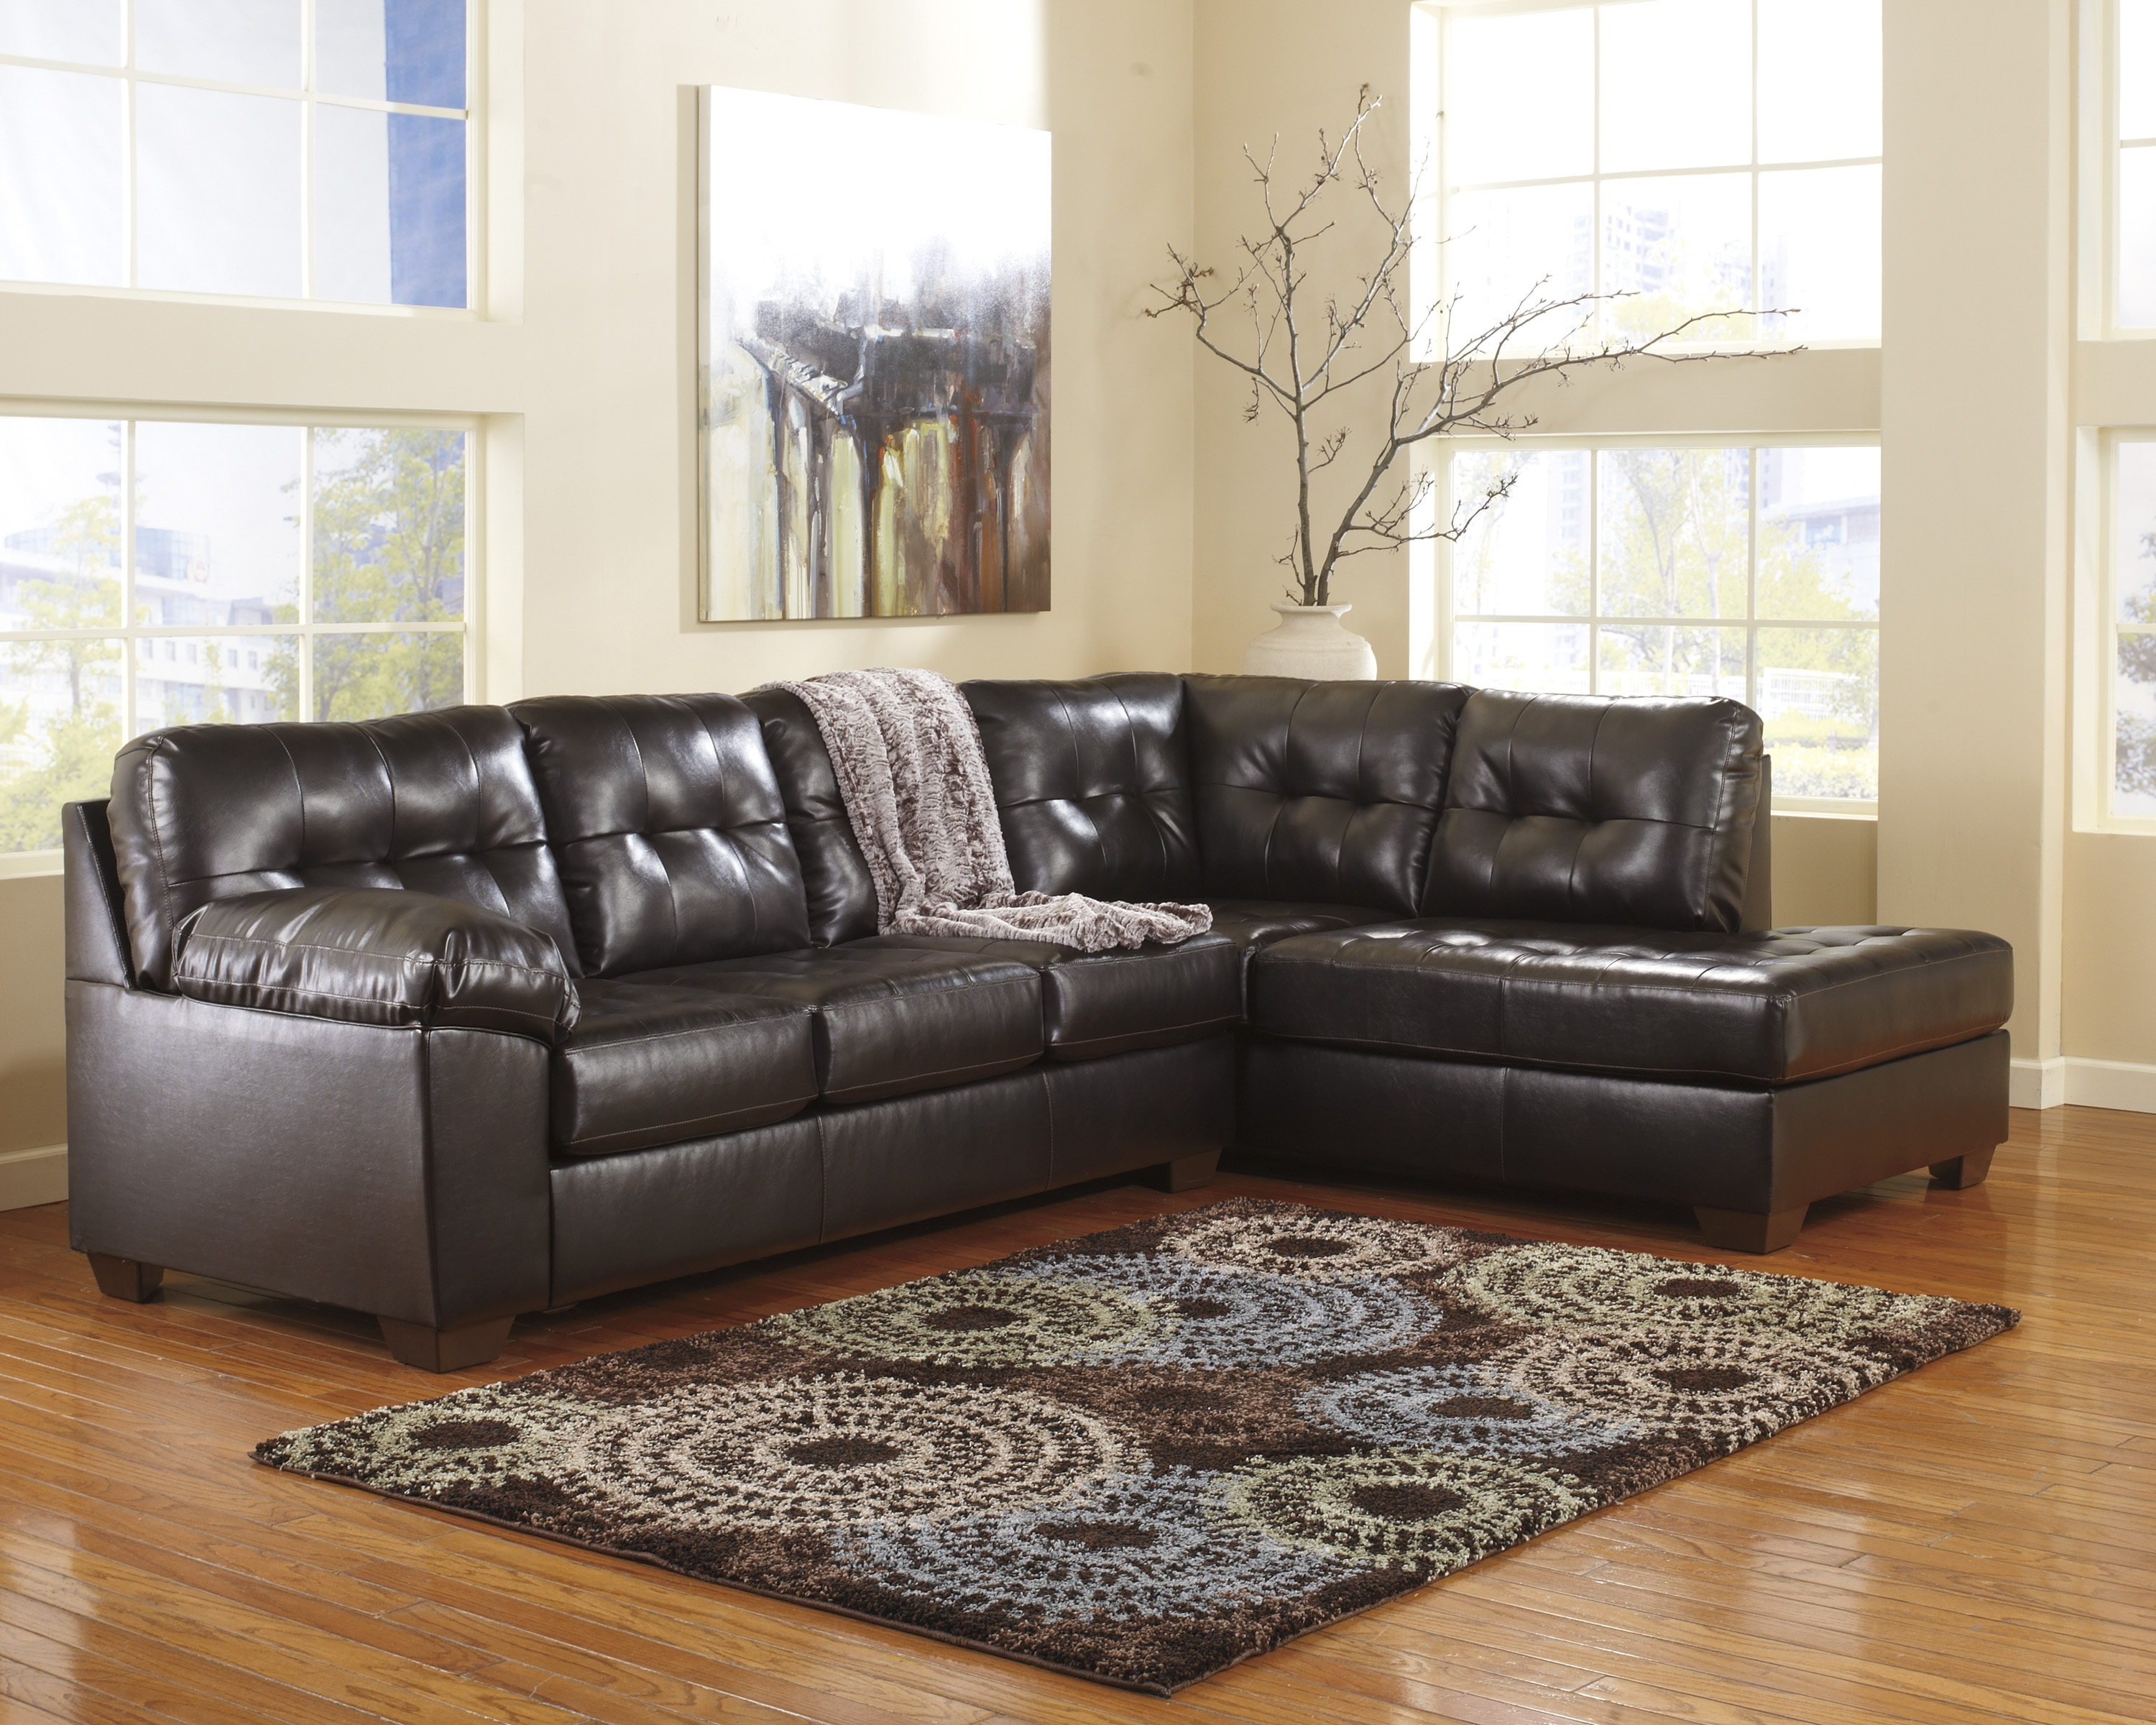 Ashley Furniture Leather Sectionals, Ashley Furniture Sofa For Current Ashley Furniture Sectionals With Chaise (View 4 of 15)